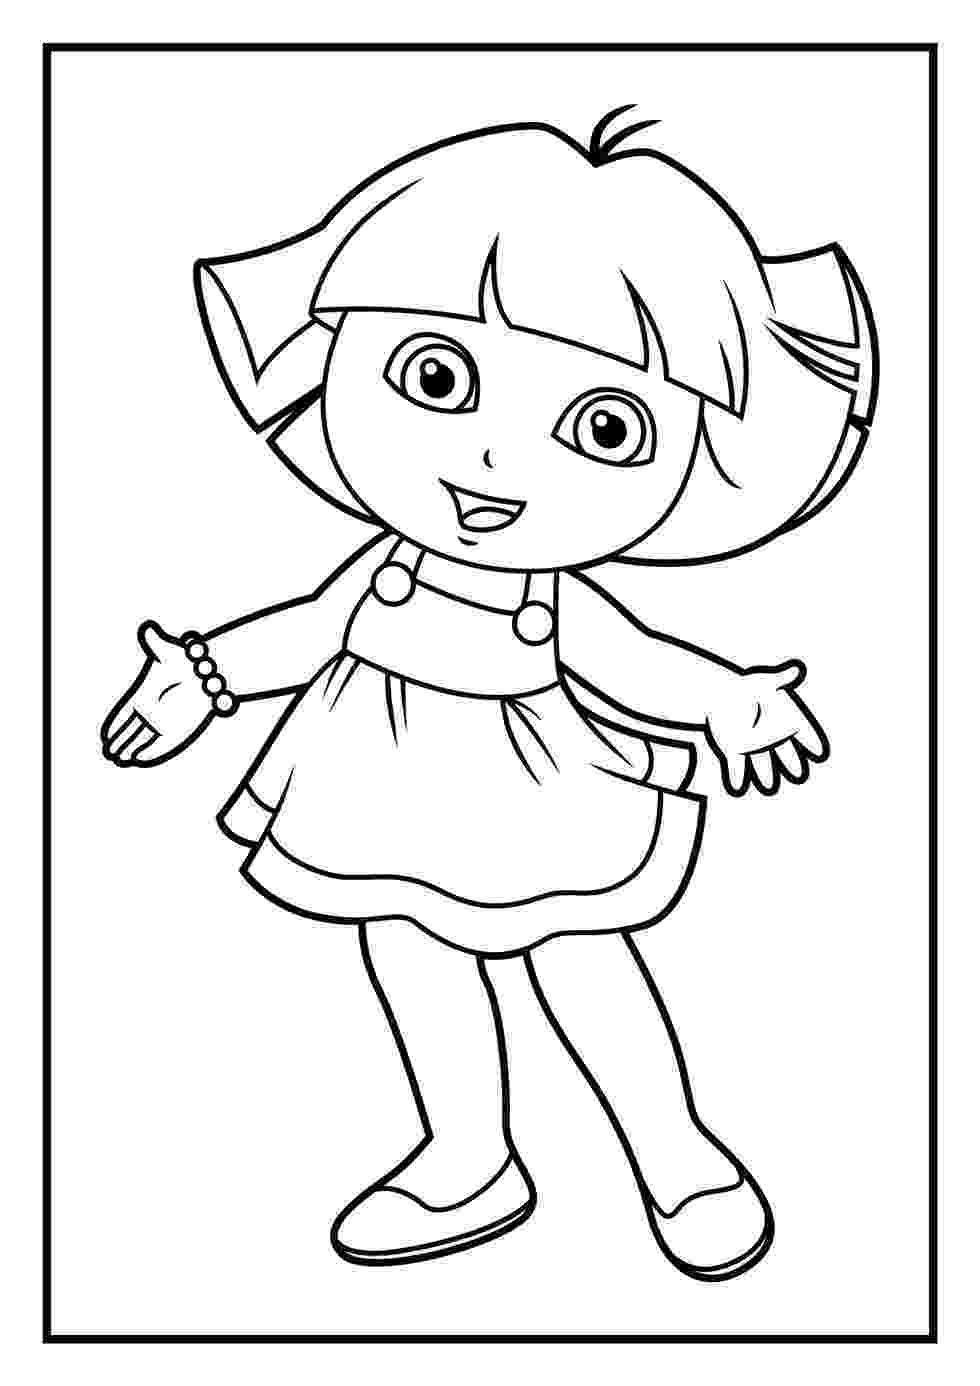 colouring pages dora dora coloring pages diego coloring pages pages dora colouring